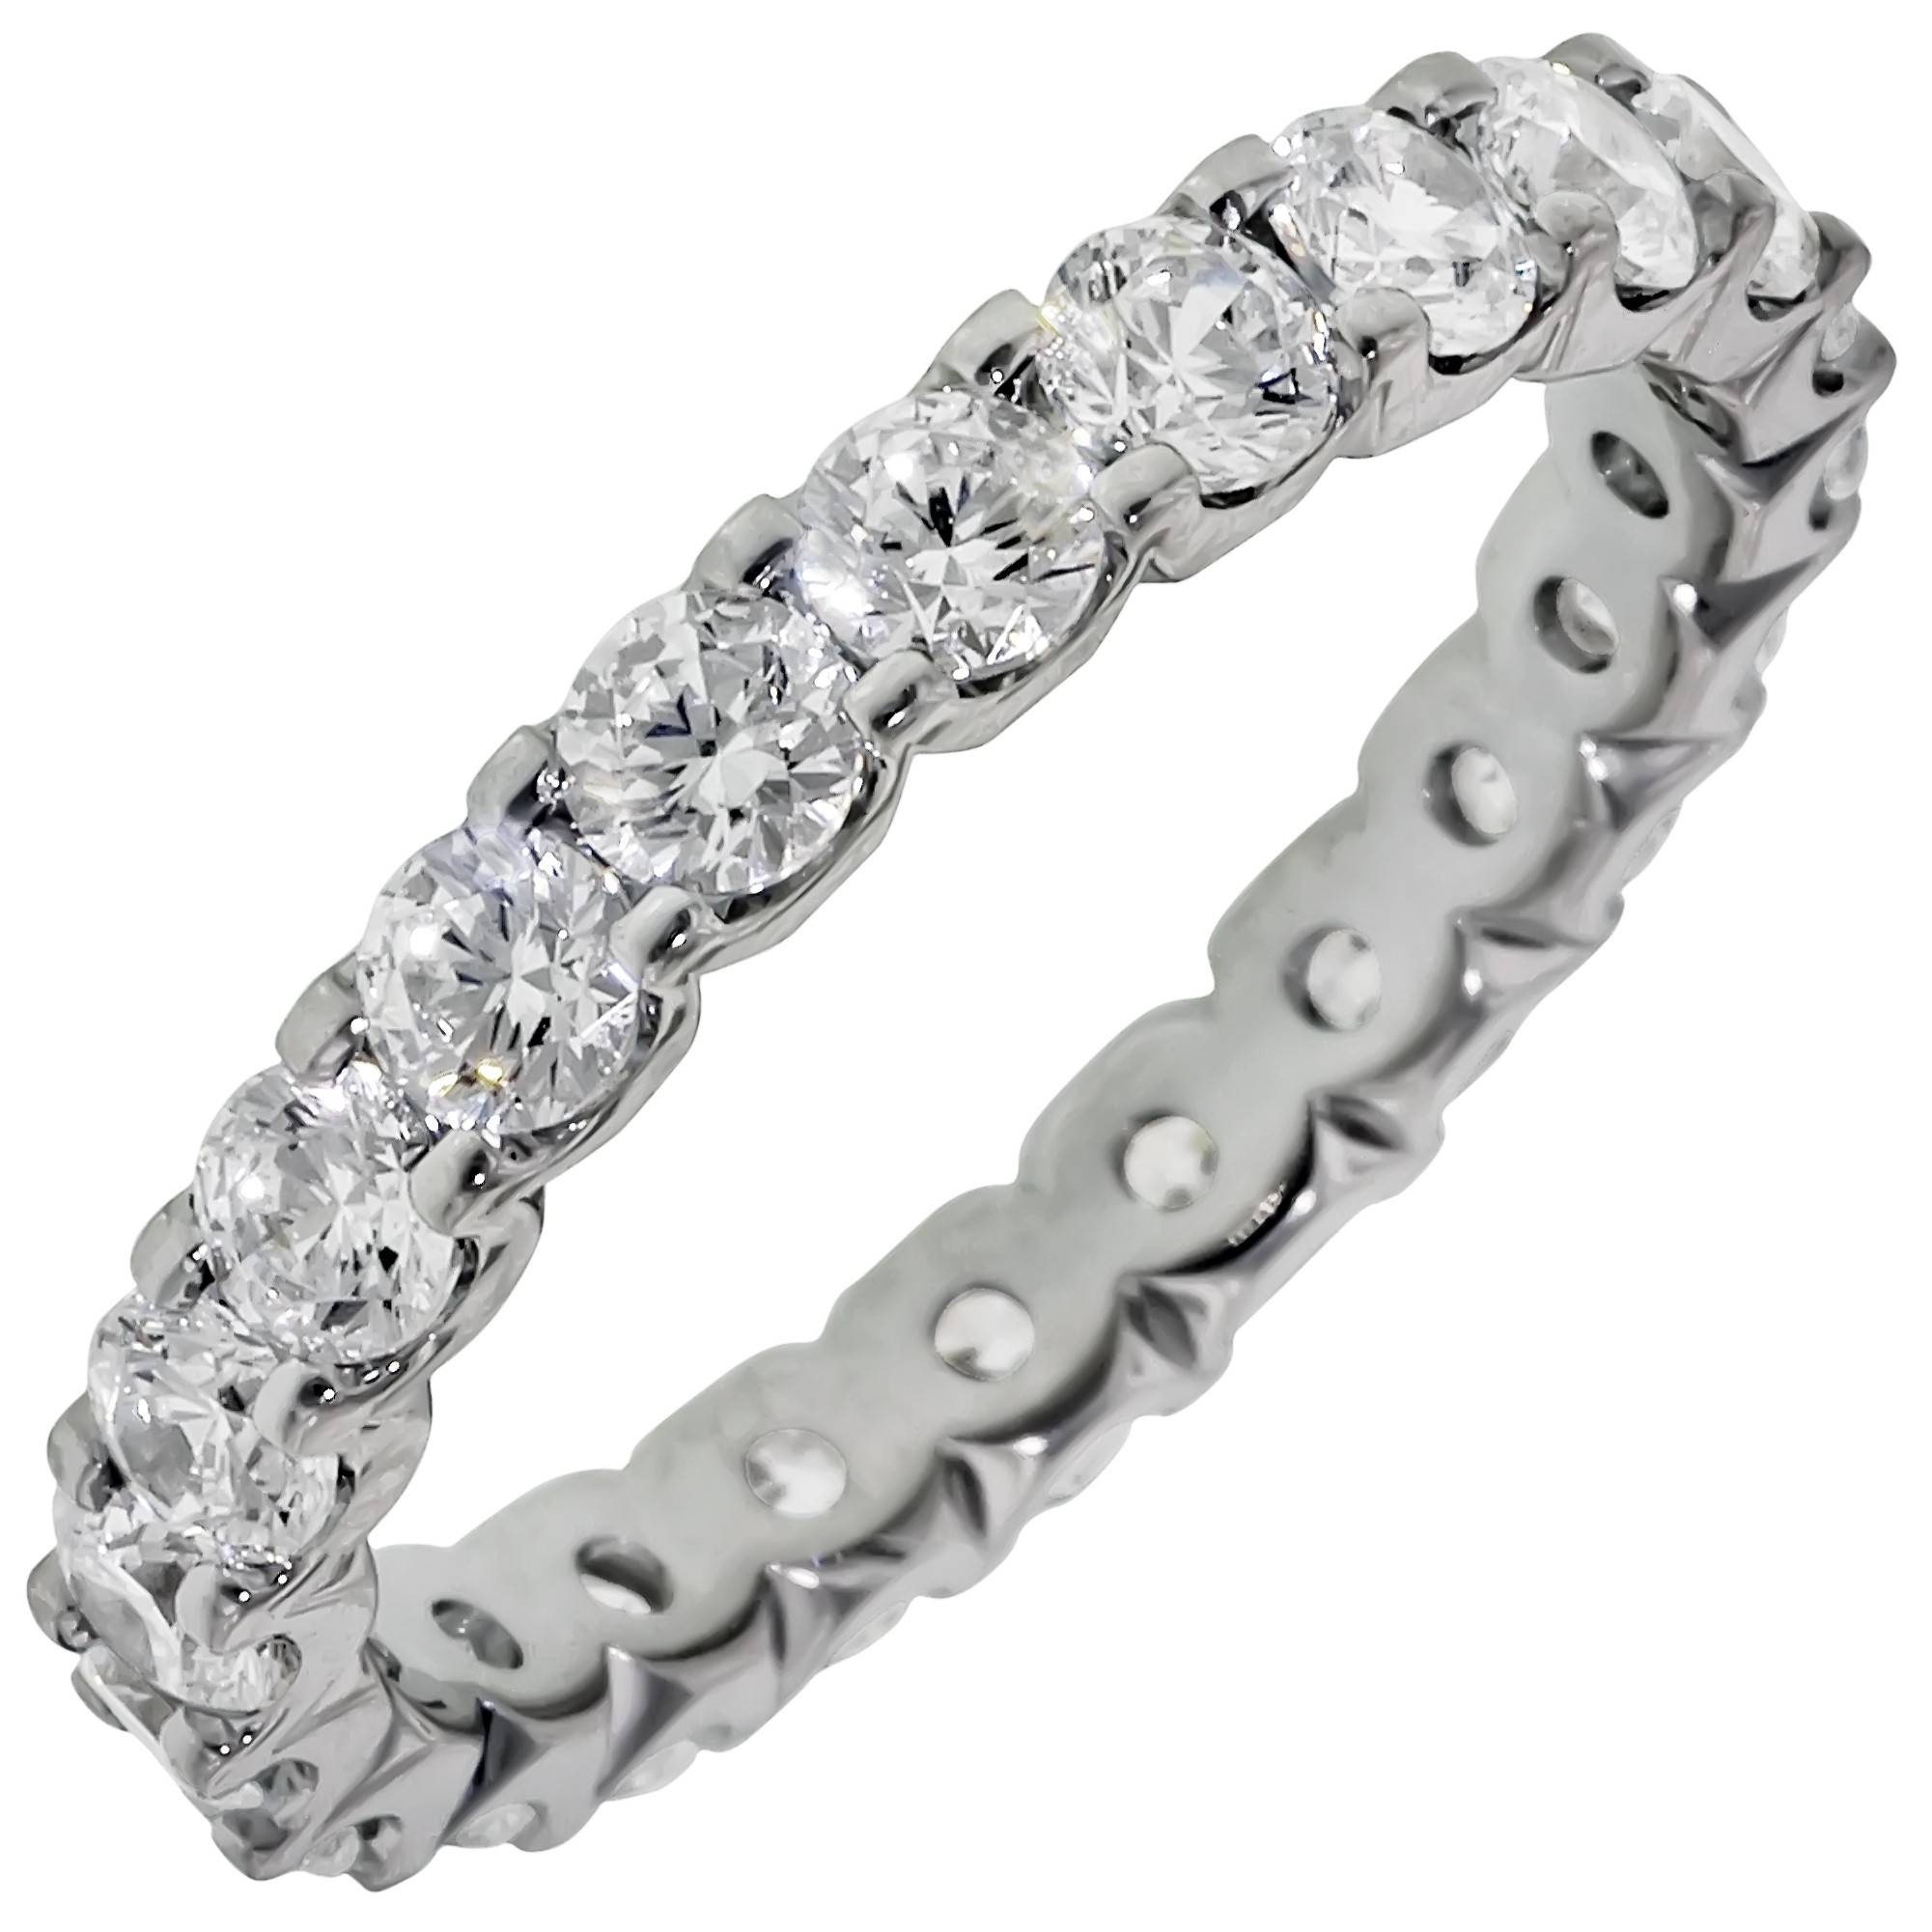 Just Perfect Diamond Eternity Wedding Band In 14Kt White Gold (2Ct Tw) For Most Recent Diamond Eternity Wedding Bands (Gallery 12 of 15)